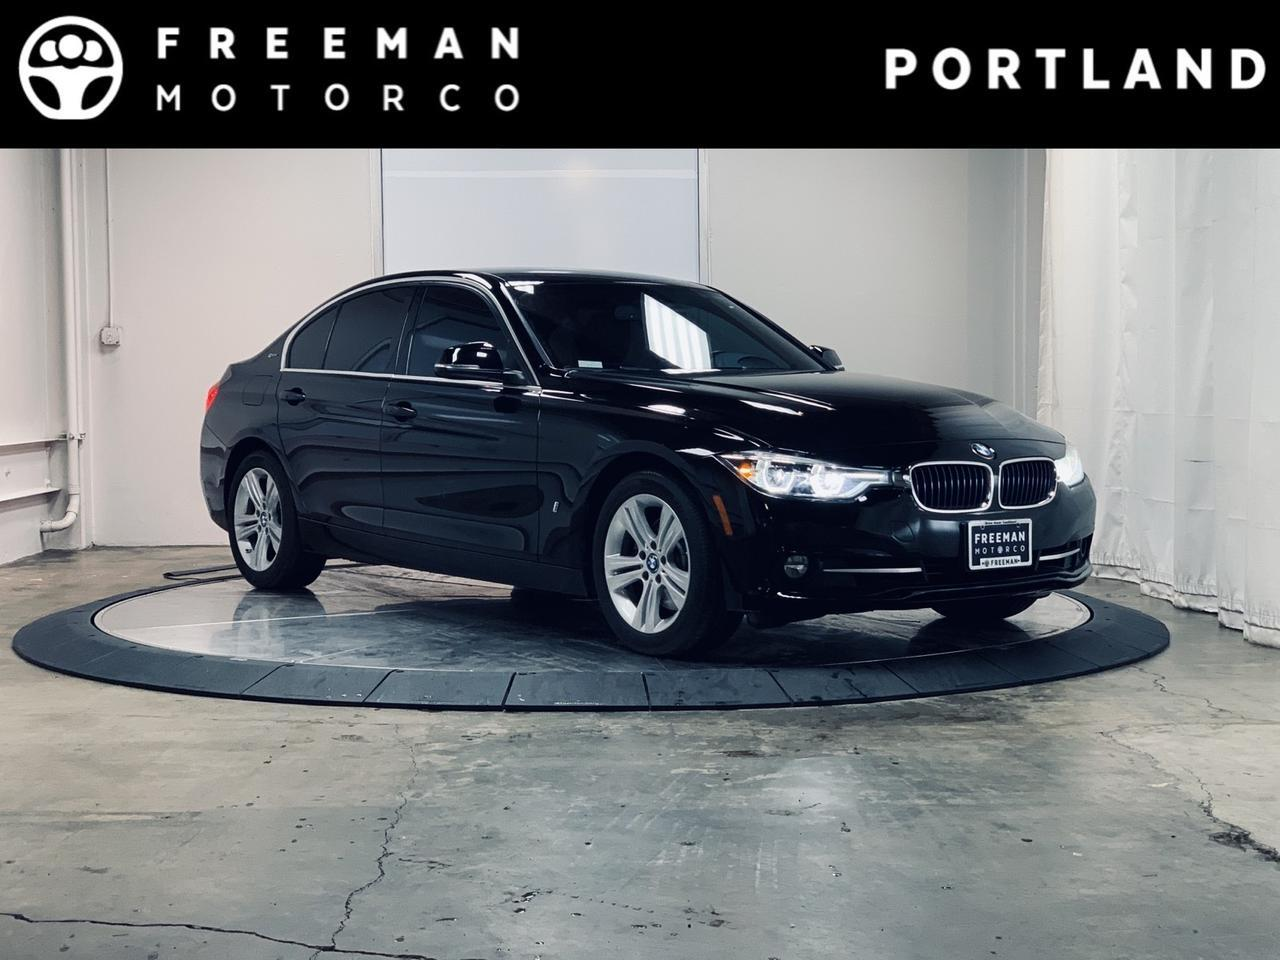 2018 BMW 330e iPerformance Heated Seats Active Blind Spot Detection Portland OR